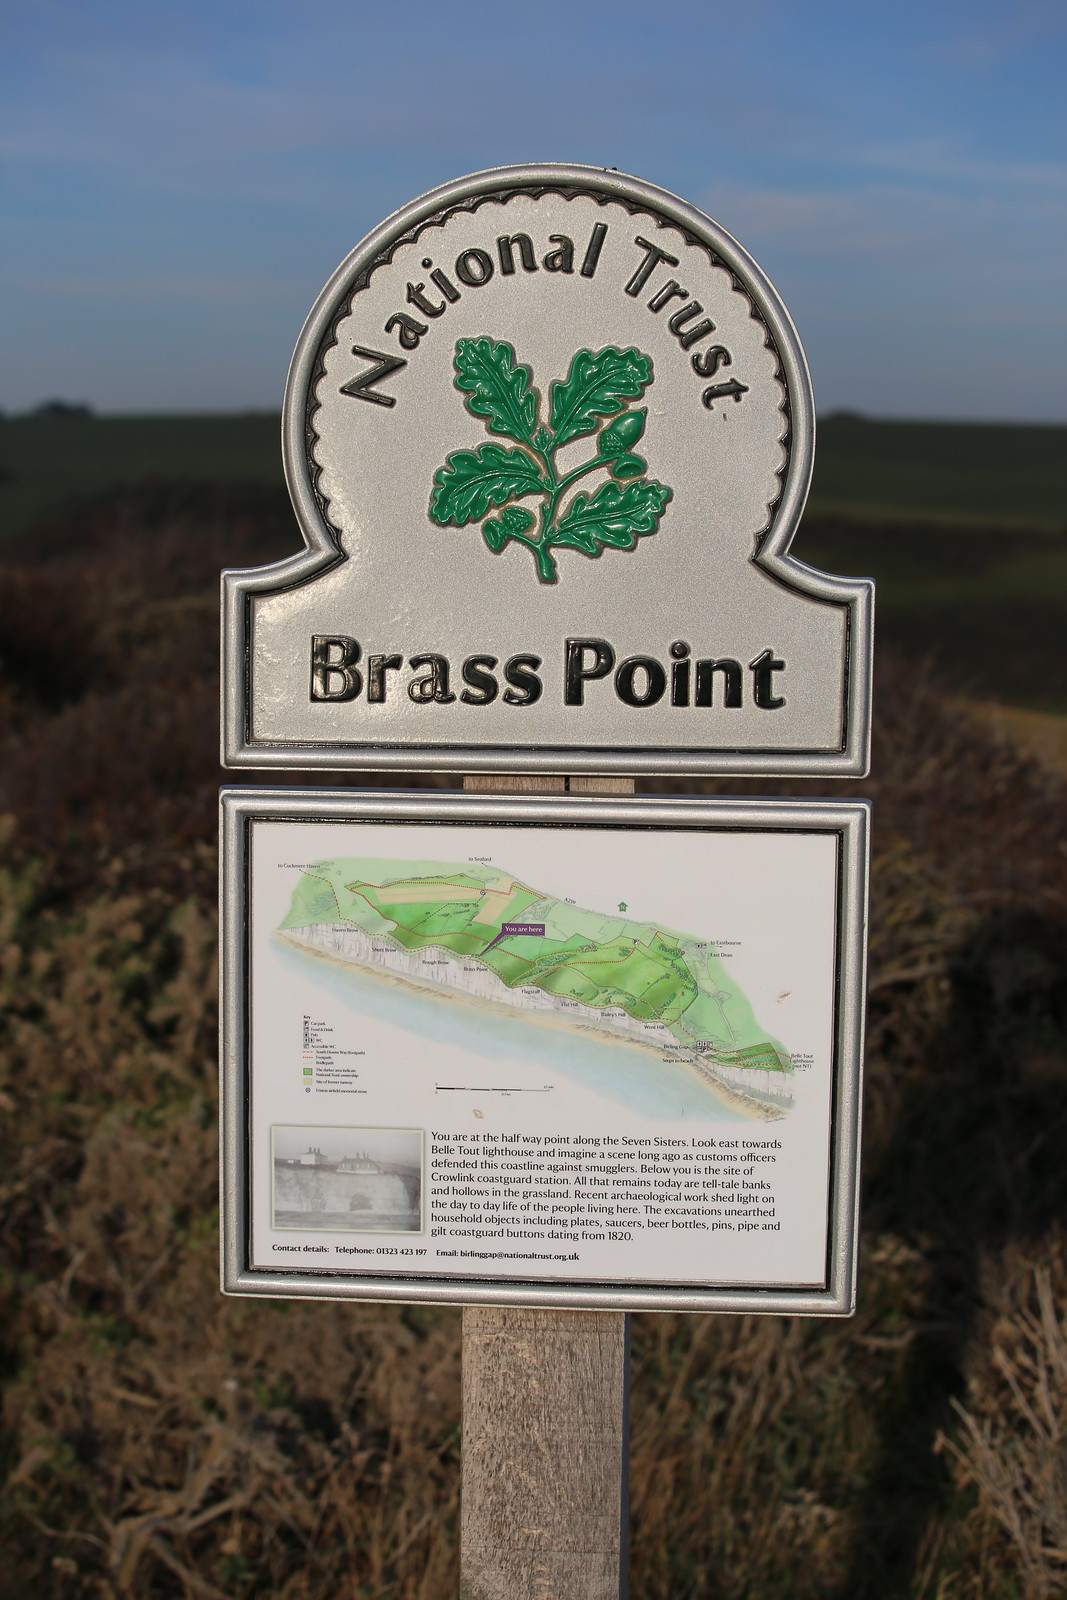 Brass Point